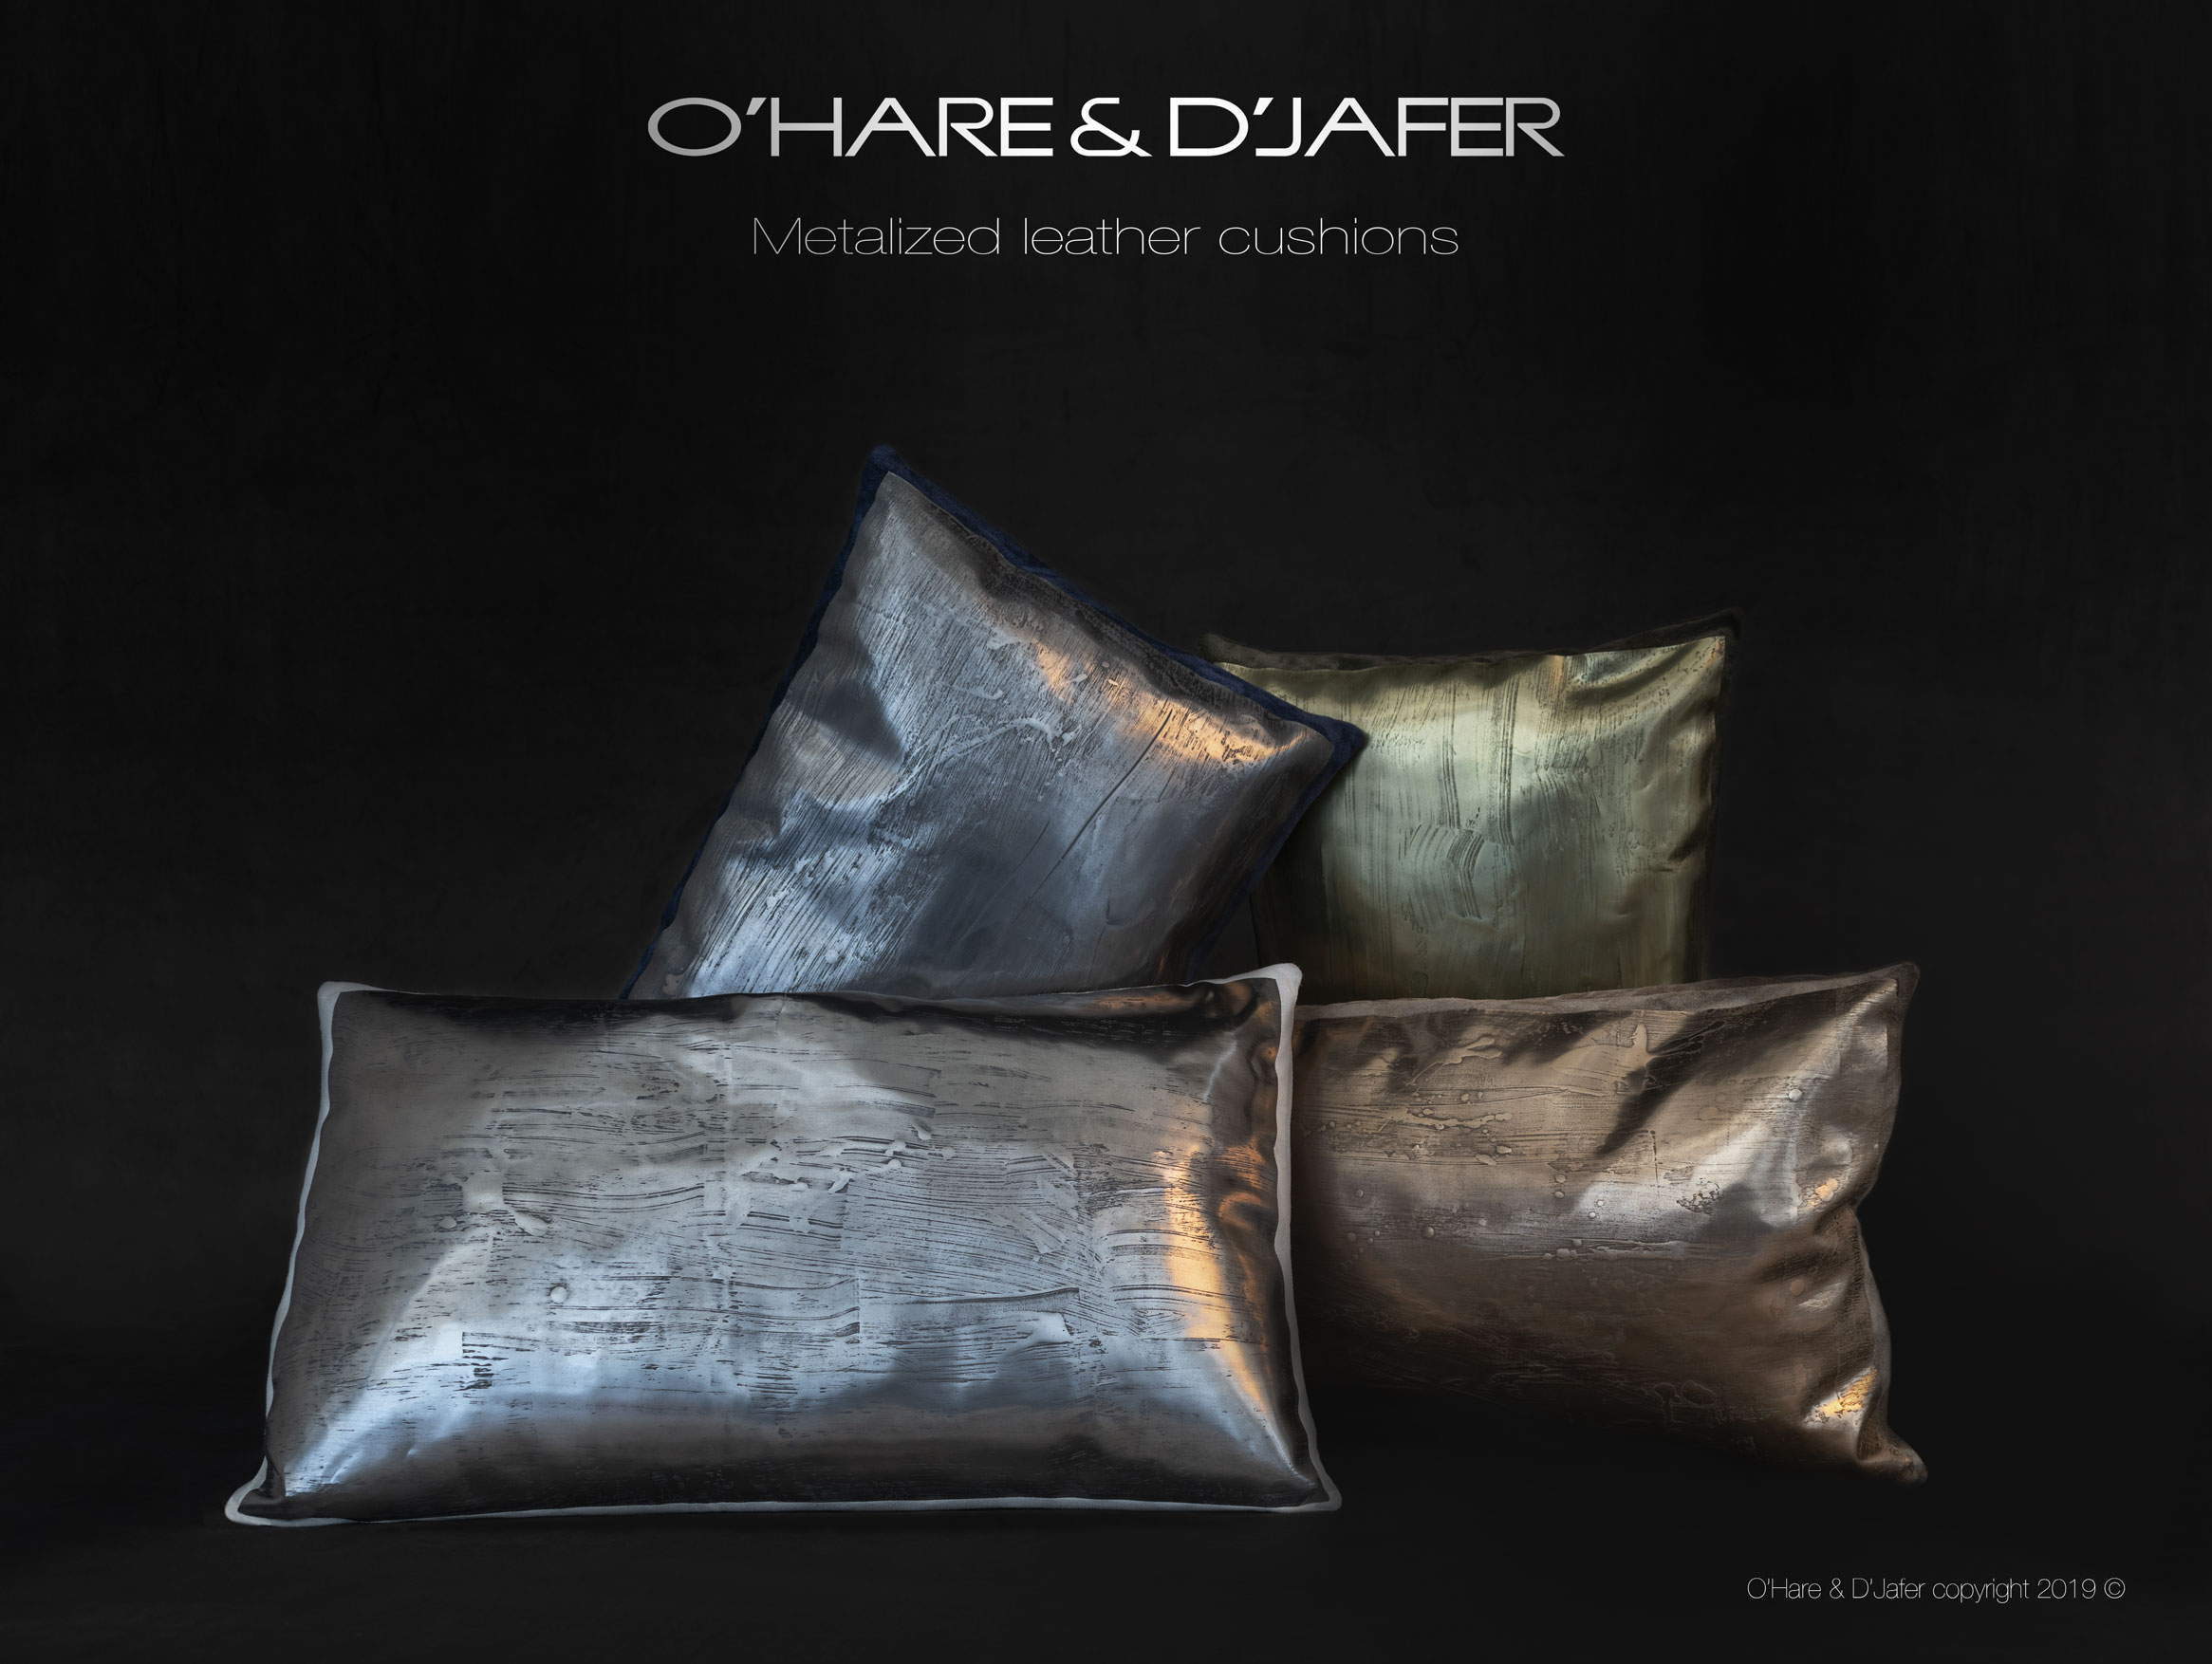 Monumental cushions with metal veneer.